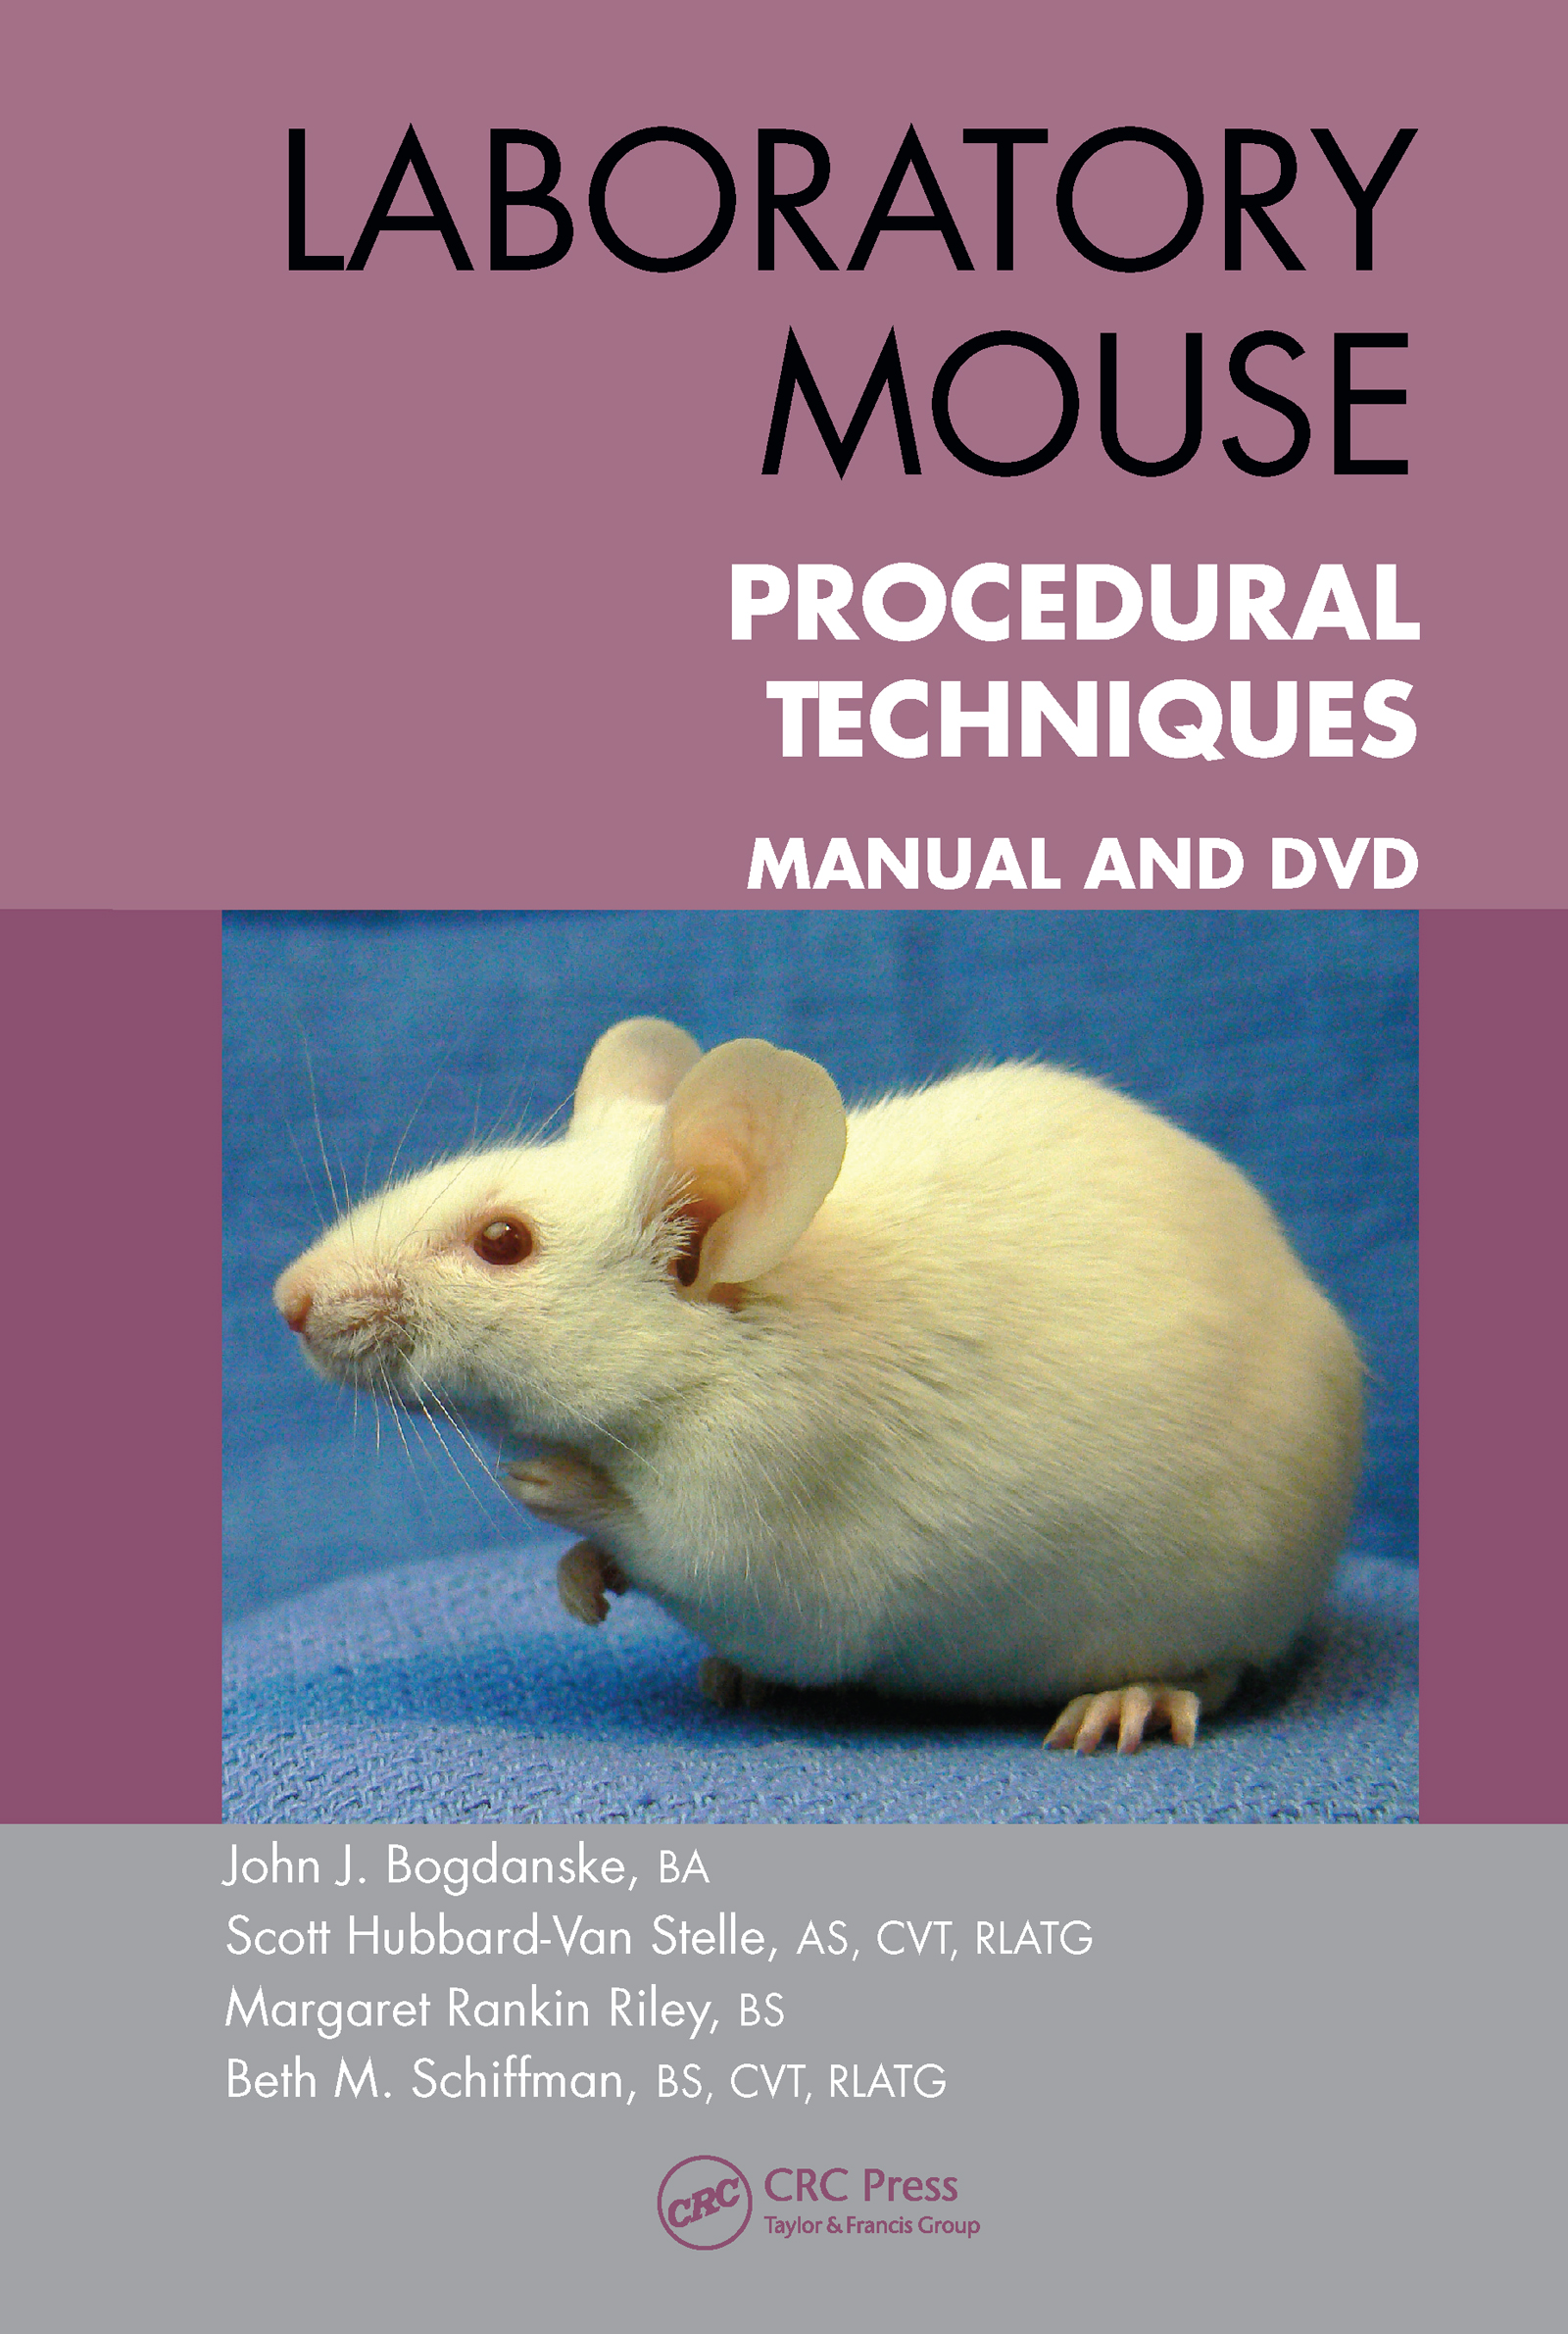 Laboratory Mouse Procedural Techniques: Manual and DVD (Pack - Book and DVD) book cover